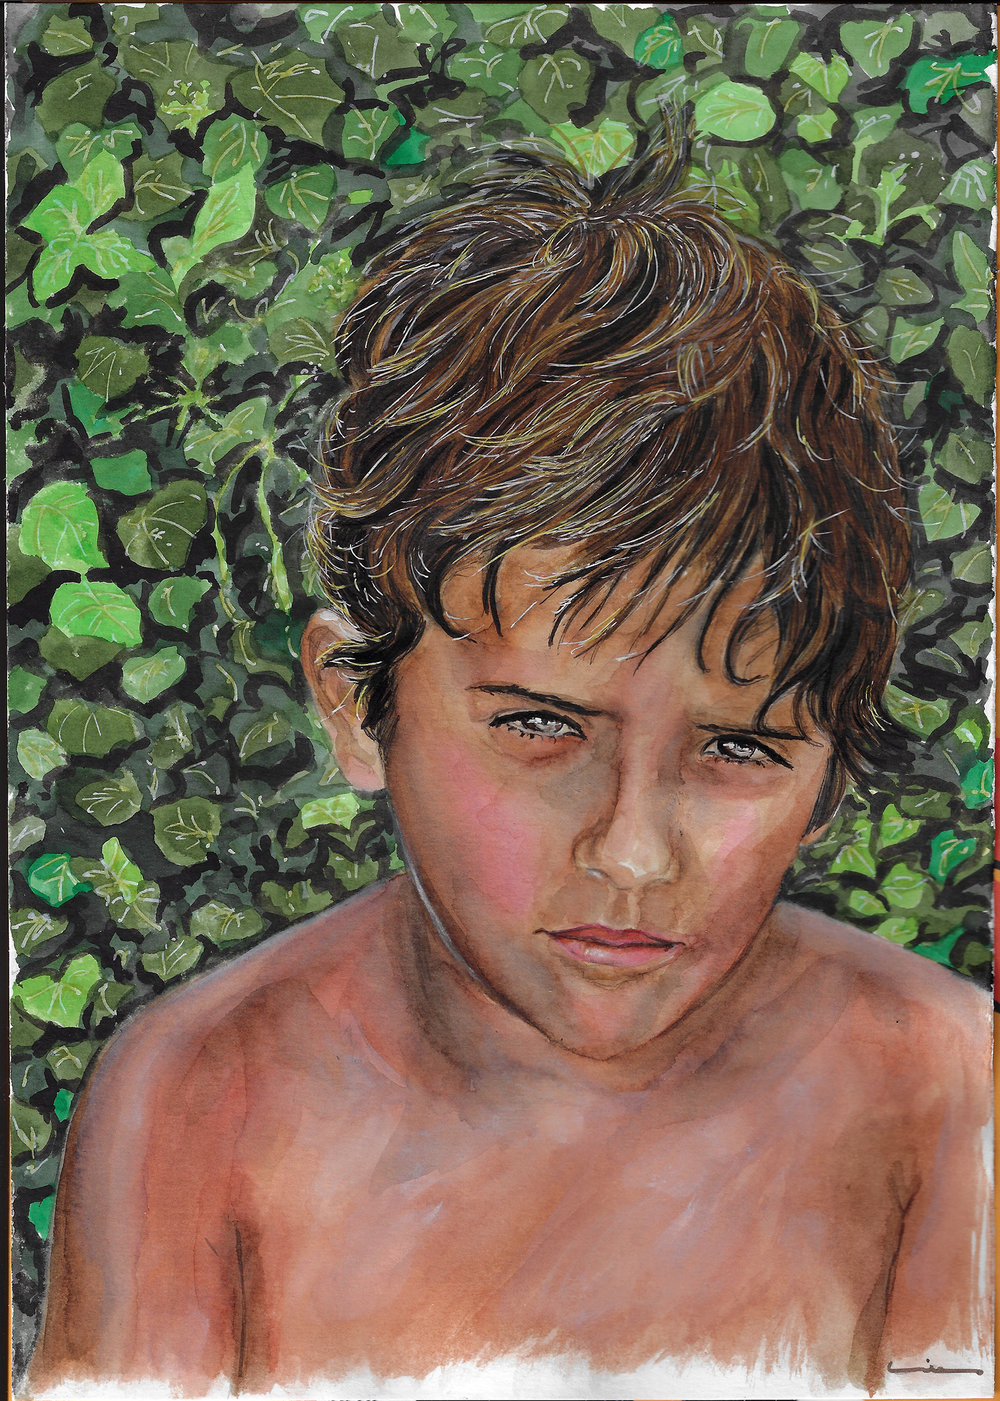 Young boy. Watercolor and ink on Canson Illustration Paper (250g/m2), A4 (29,7x21 cm). Sold. Commissioned work.  (Unavailable.)